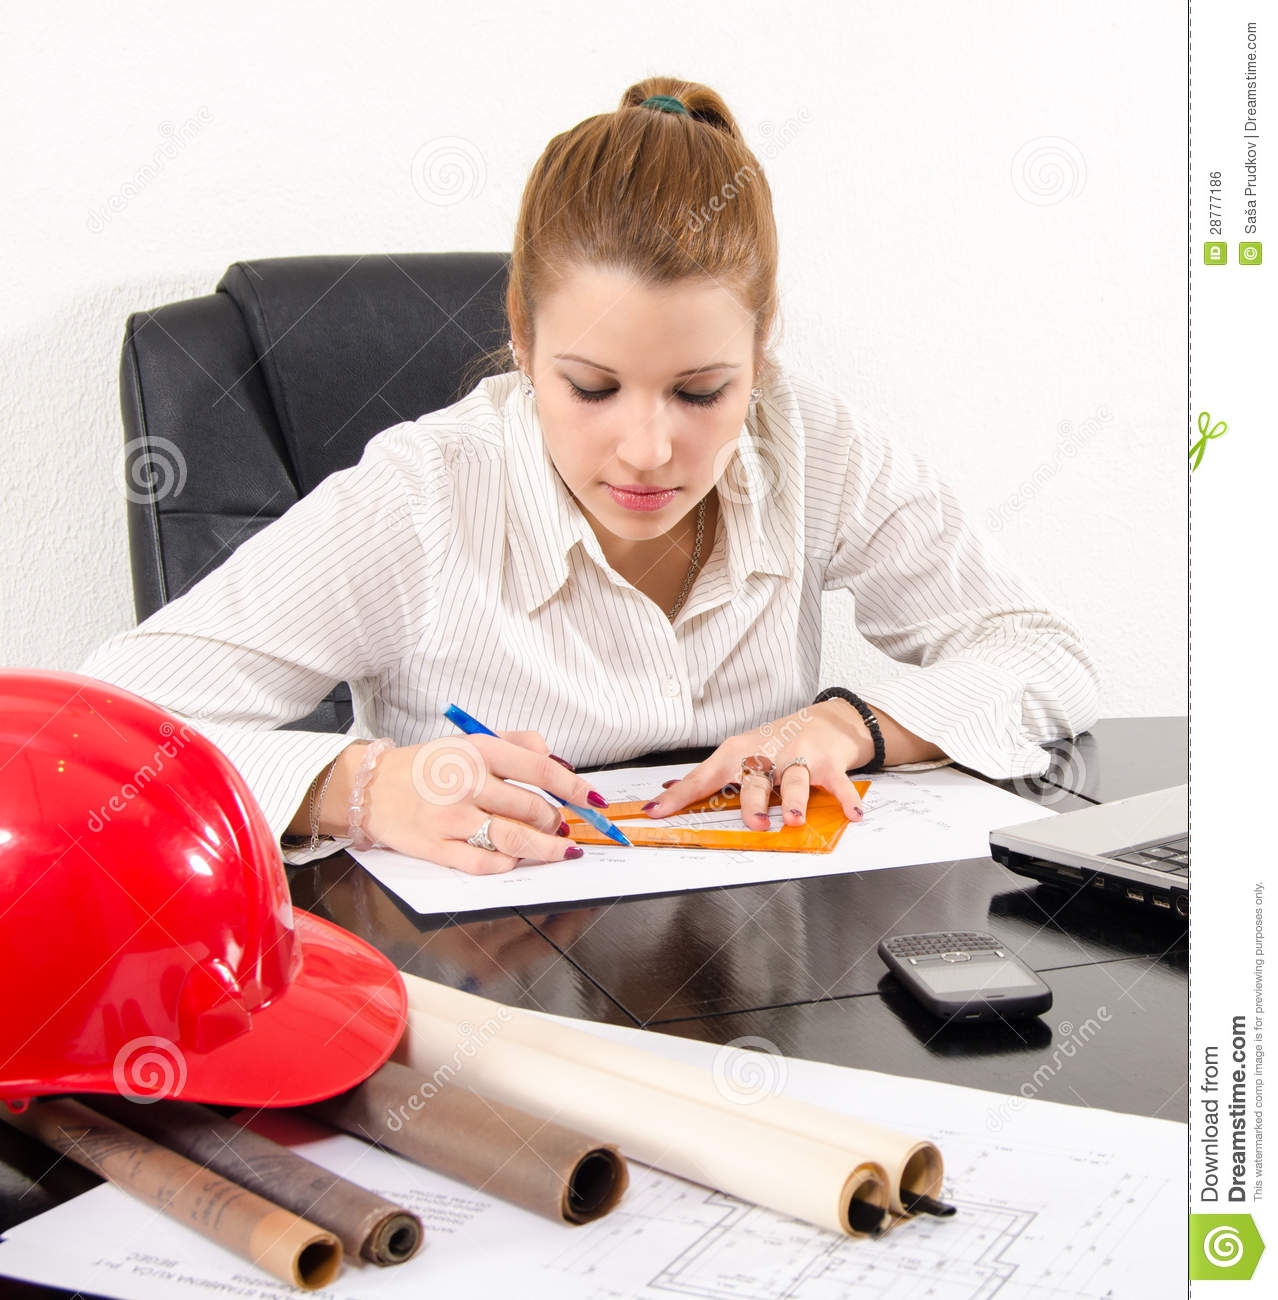 Architect: Young Female Architect Working On The Project Royalty Free